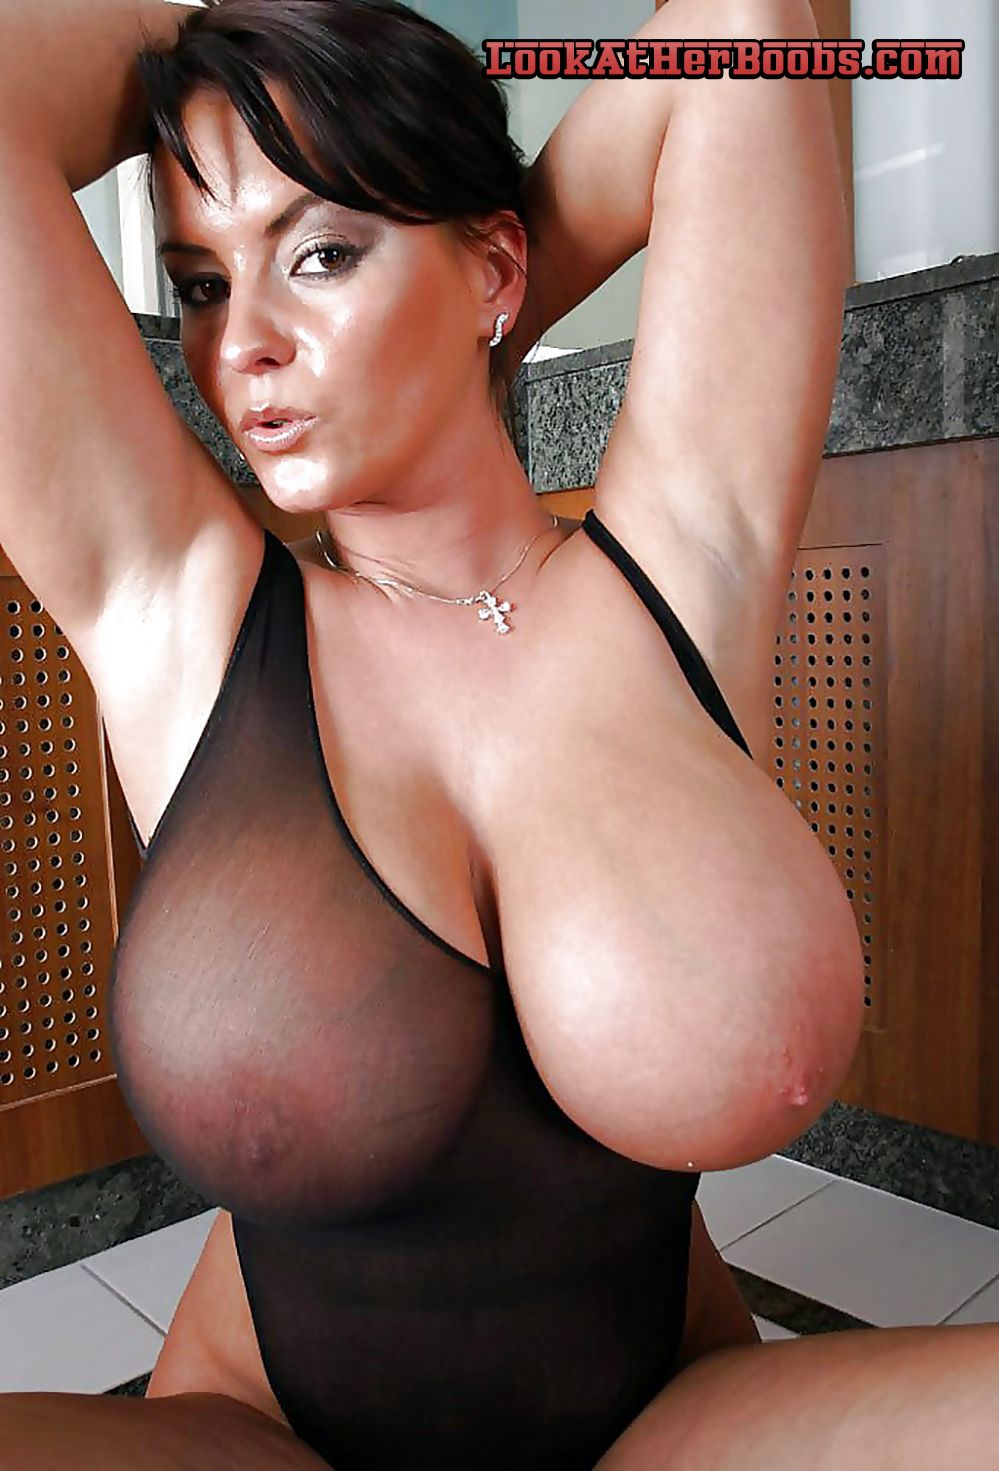 huge-boobs-and-nails-nudes-tube-private